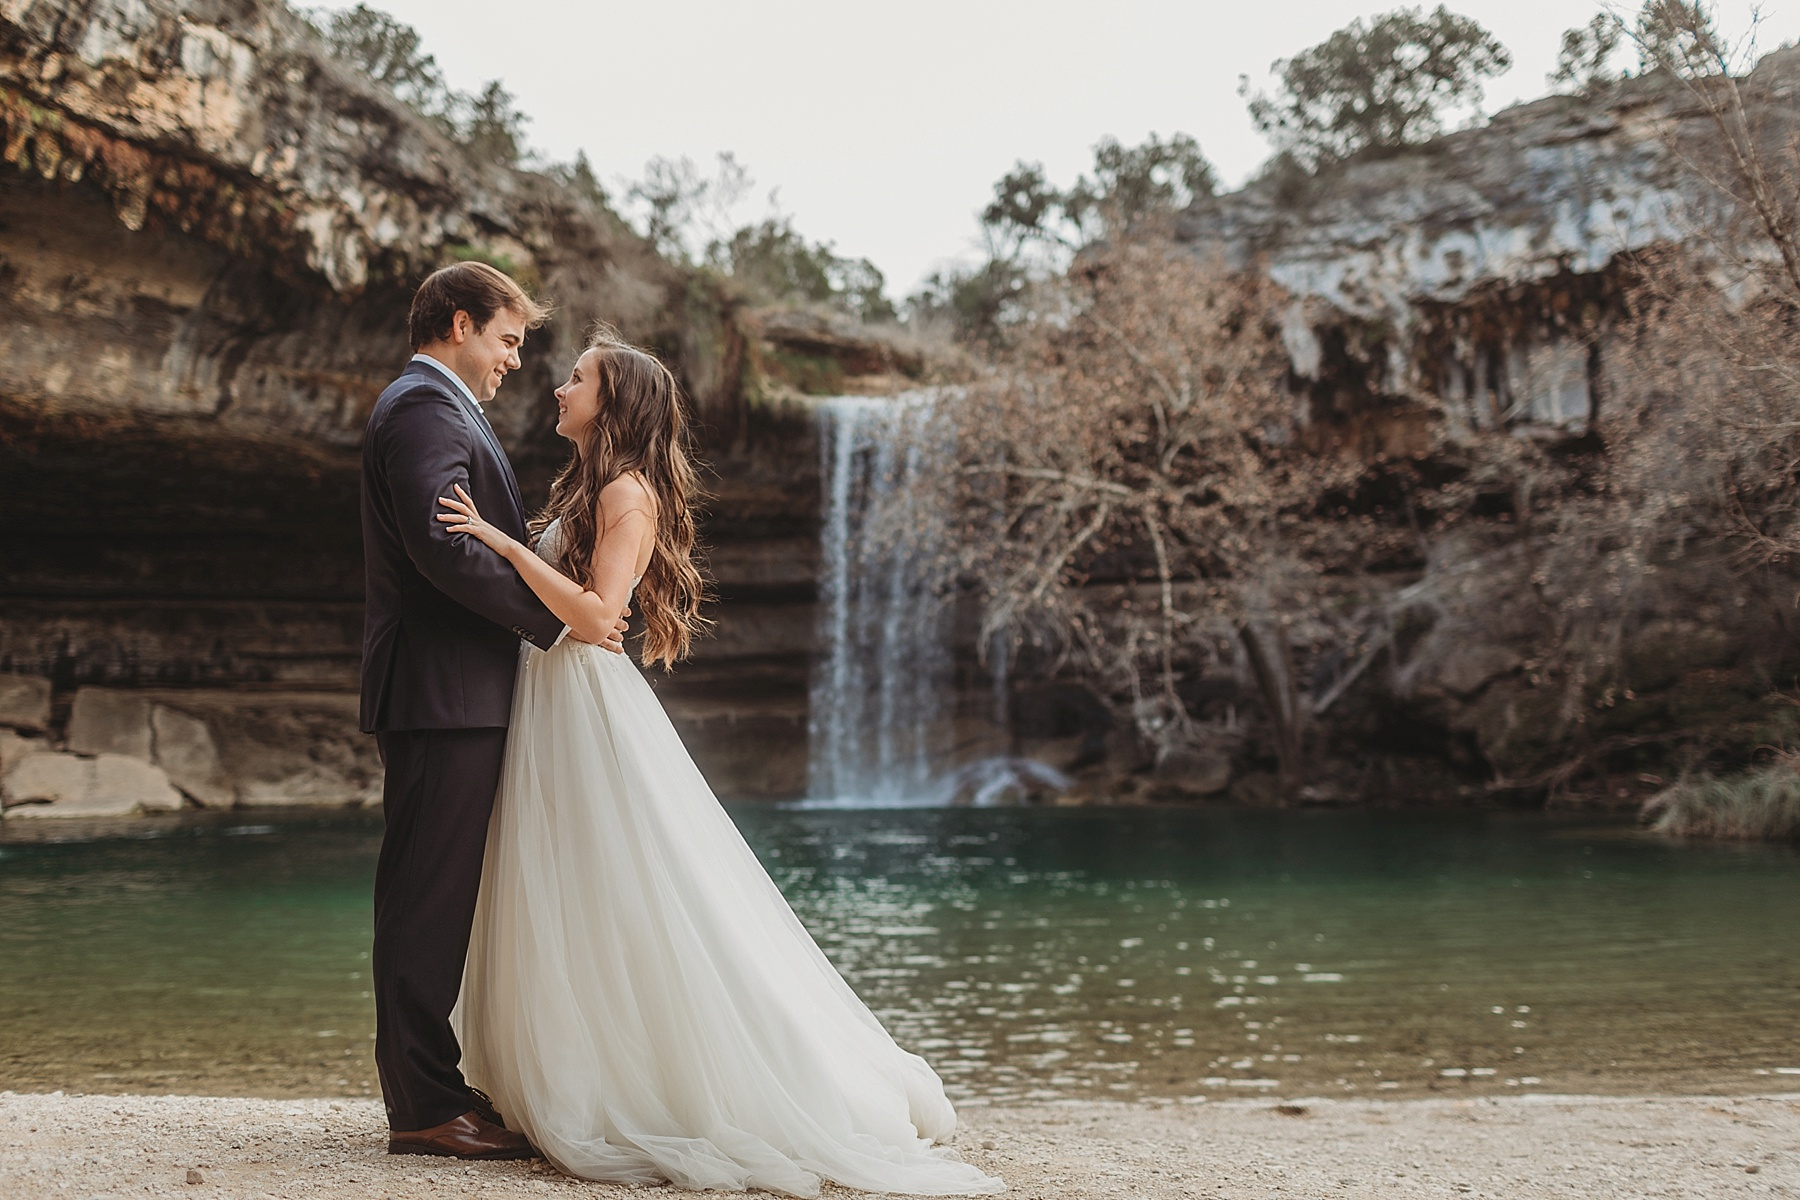 Sydney & Cody's Hamilton Pool After Session